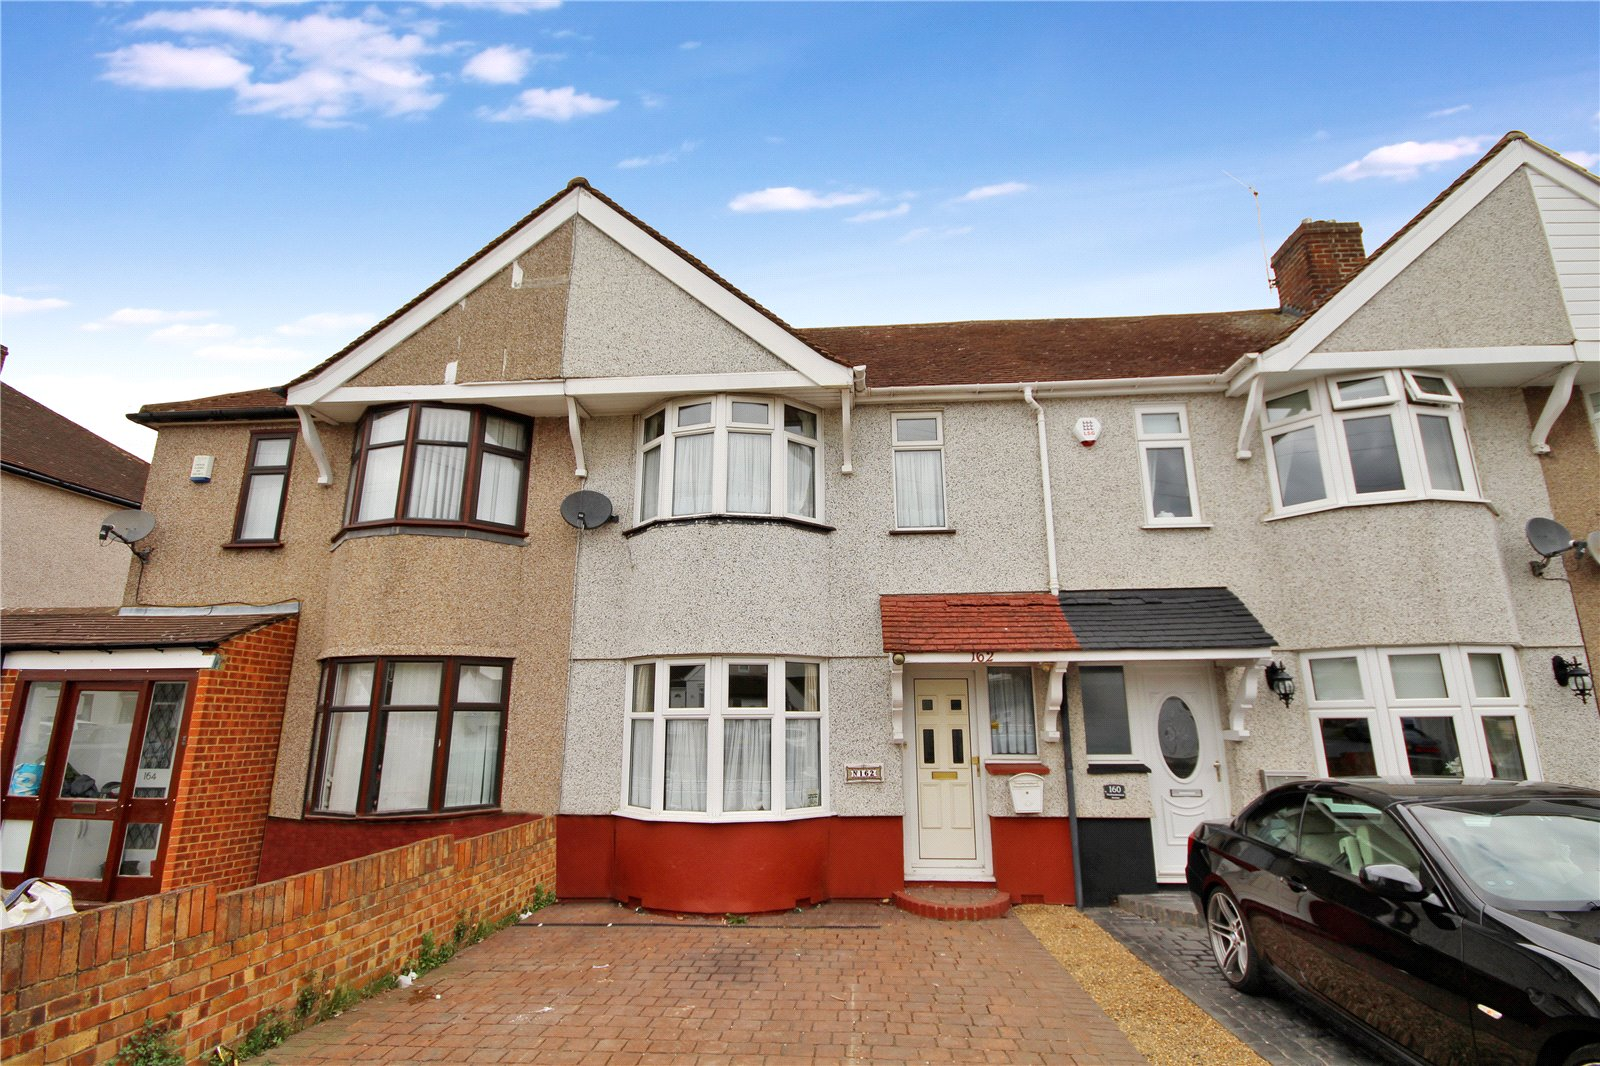 Northumberland Avenue, South Welling, Kent, DA16